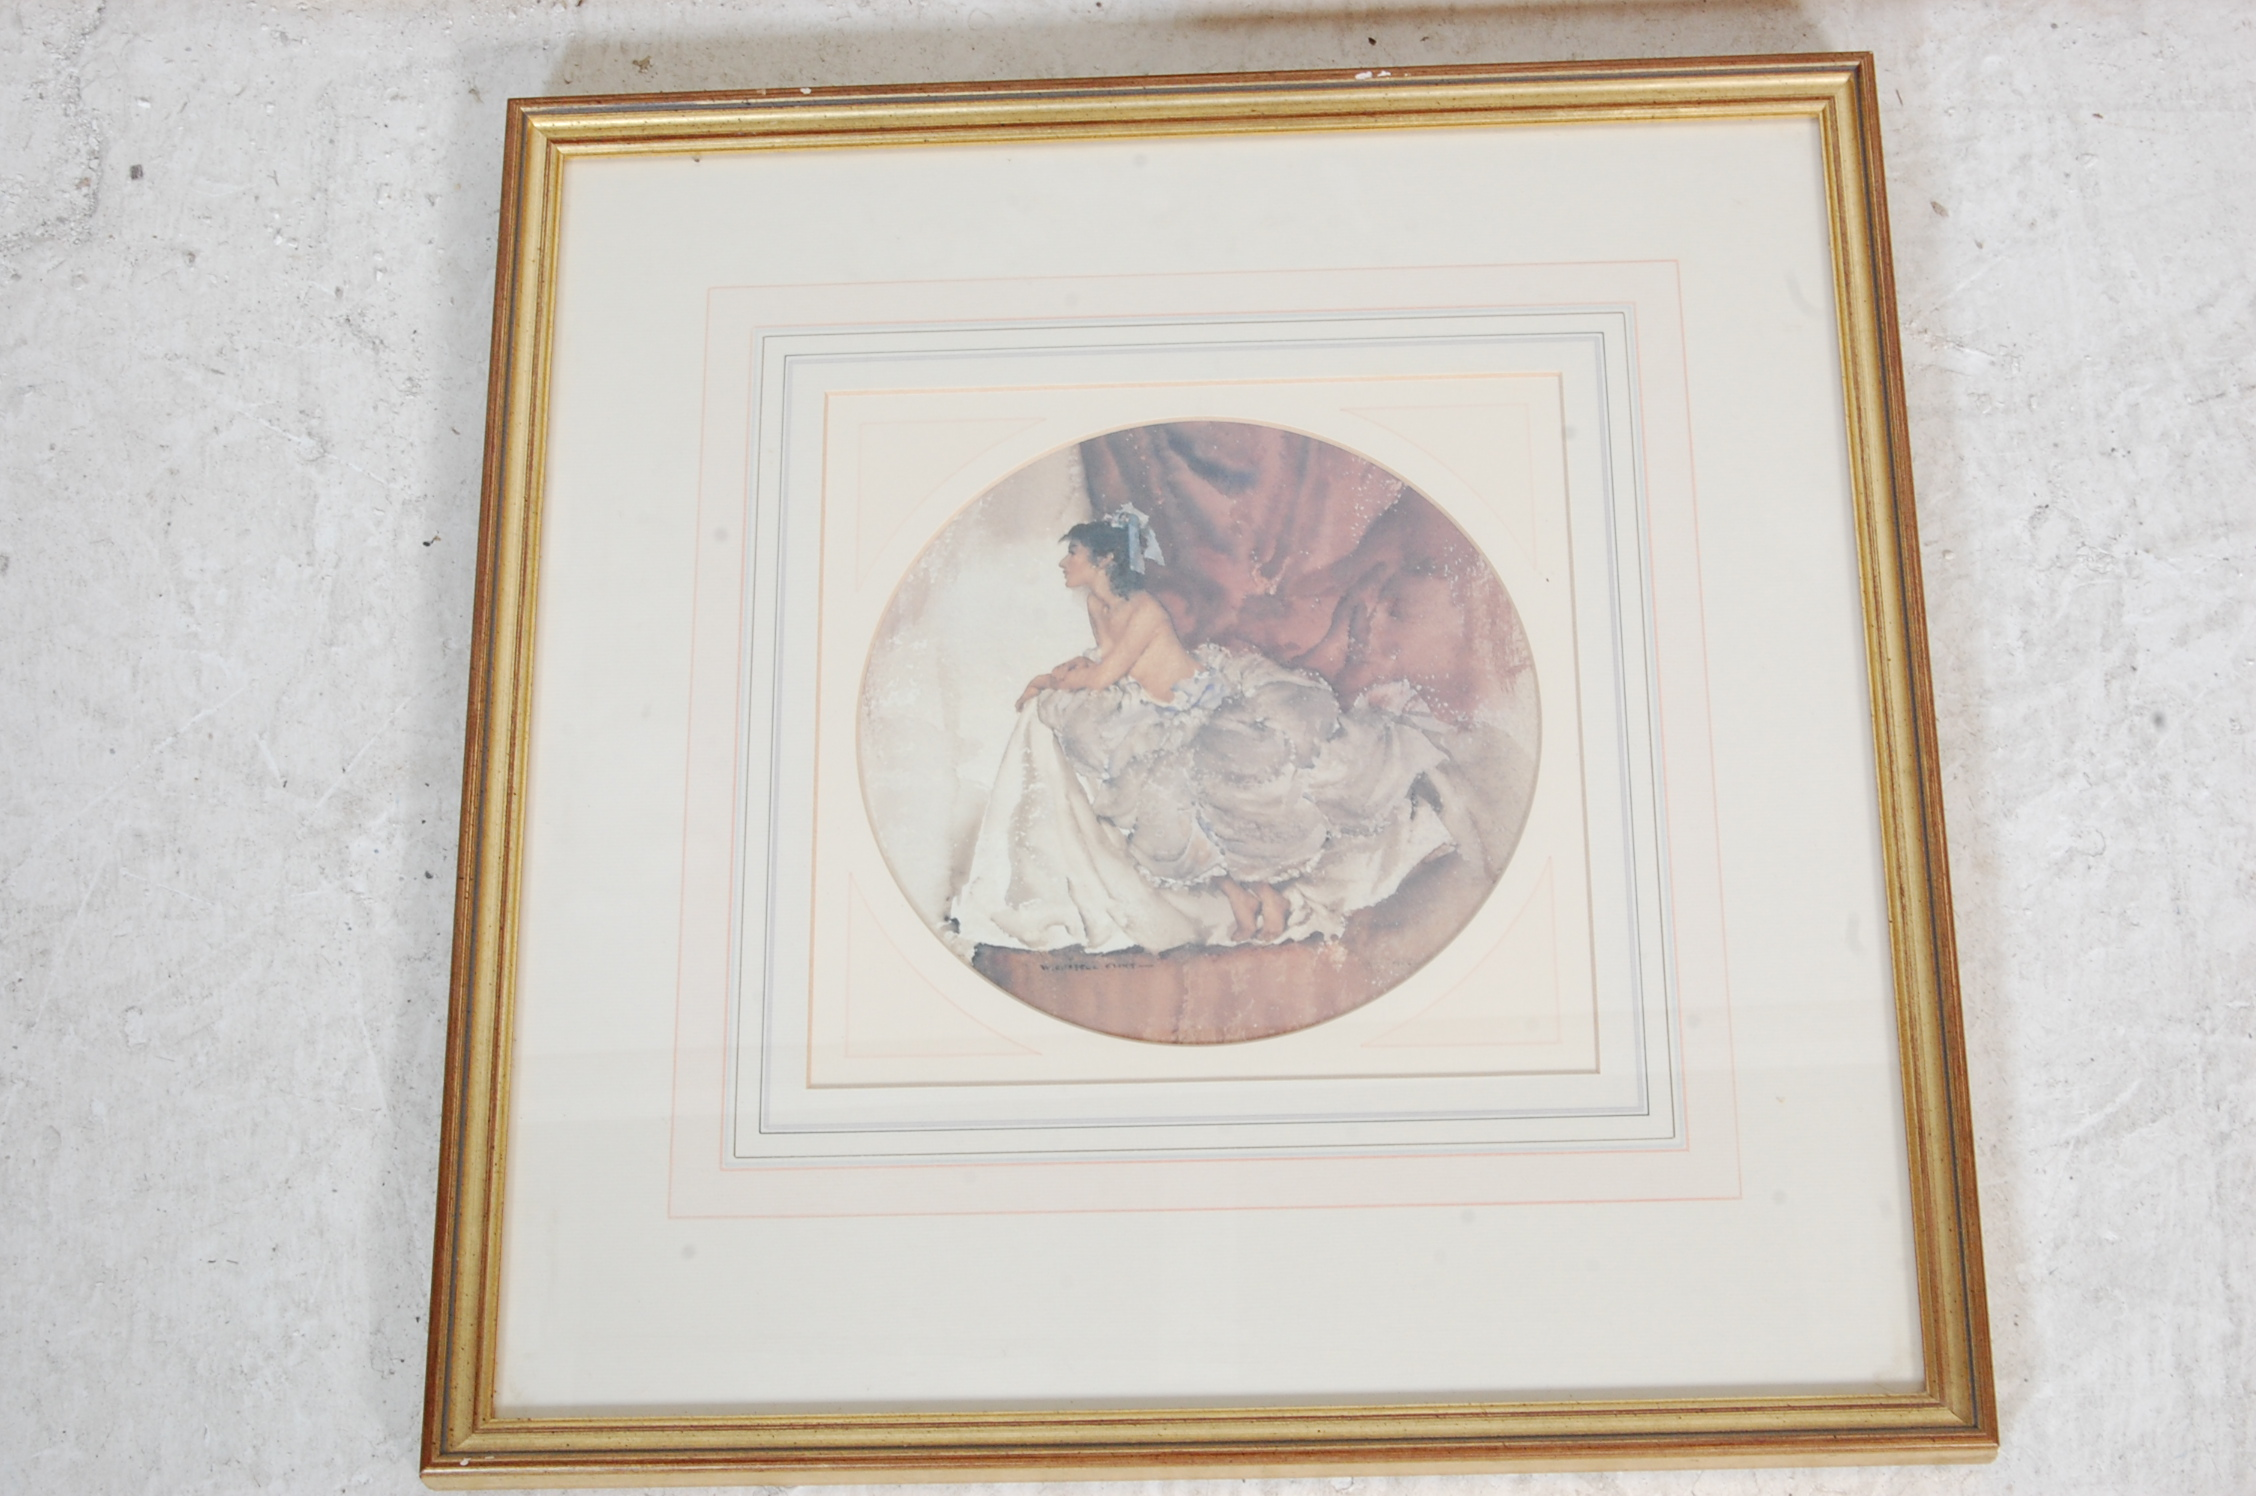 COLLECTION OF FIVE VINTAGE WILLIAM R. FLINT PICTURE PRINTS - Image 6 of 6